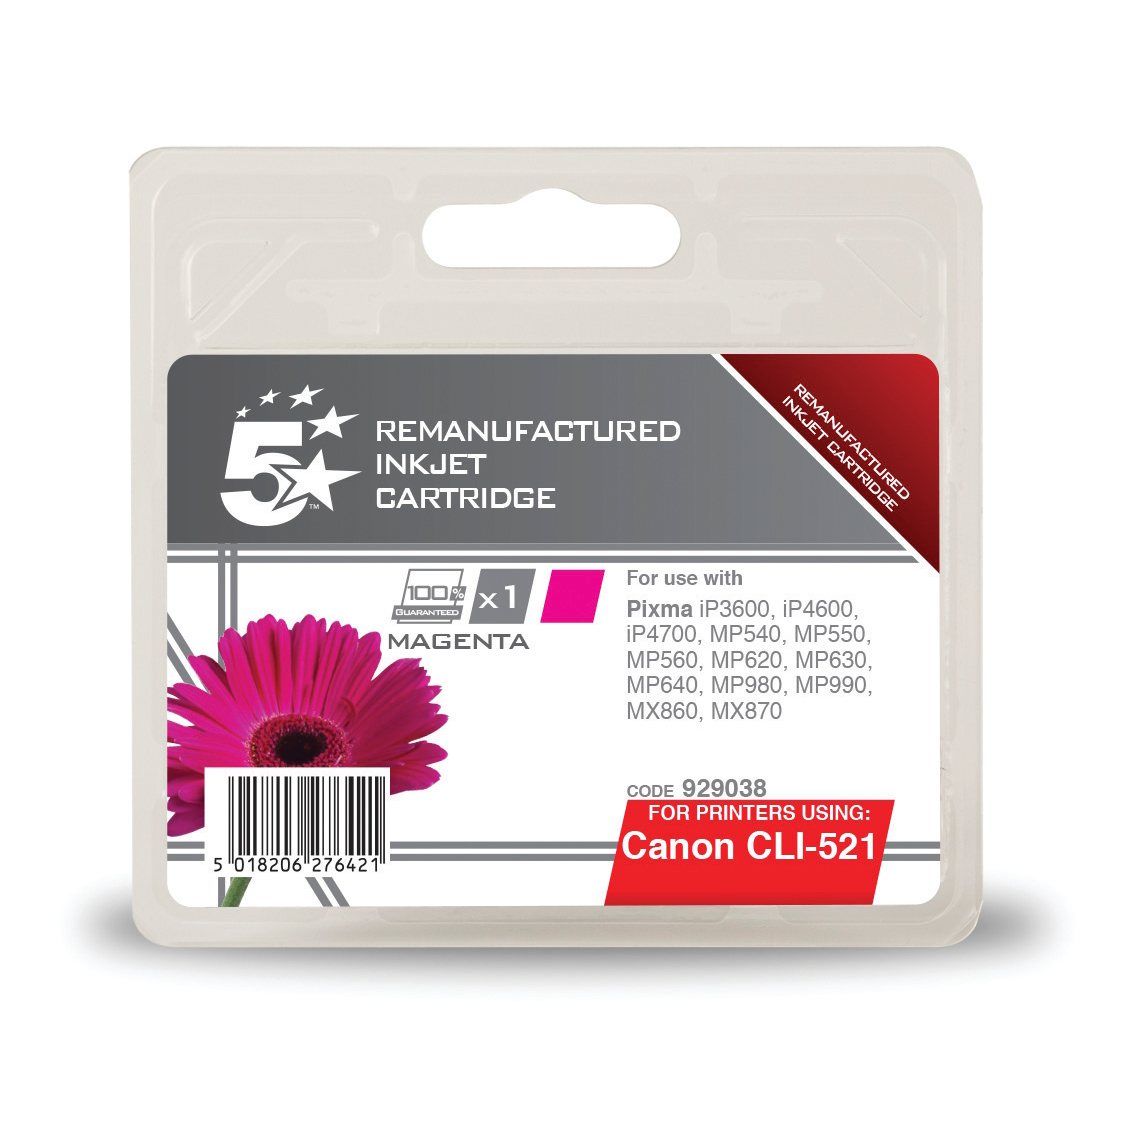 Inkjet Cartridges 5 Star Office Remanufactured Inkjet Cartridge Page Life 450pp 9ml Magenta Canon CLI-521M Alternative